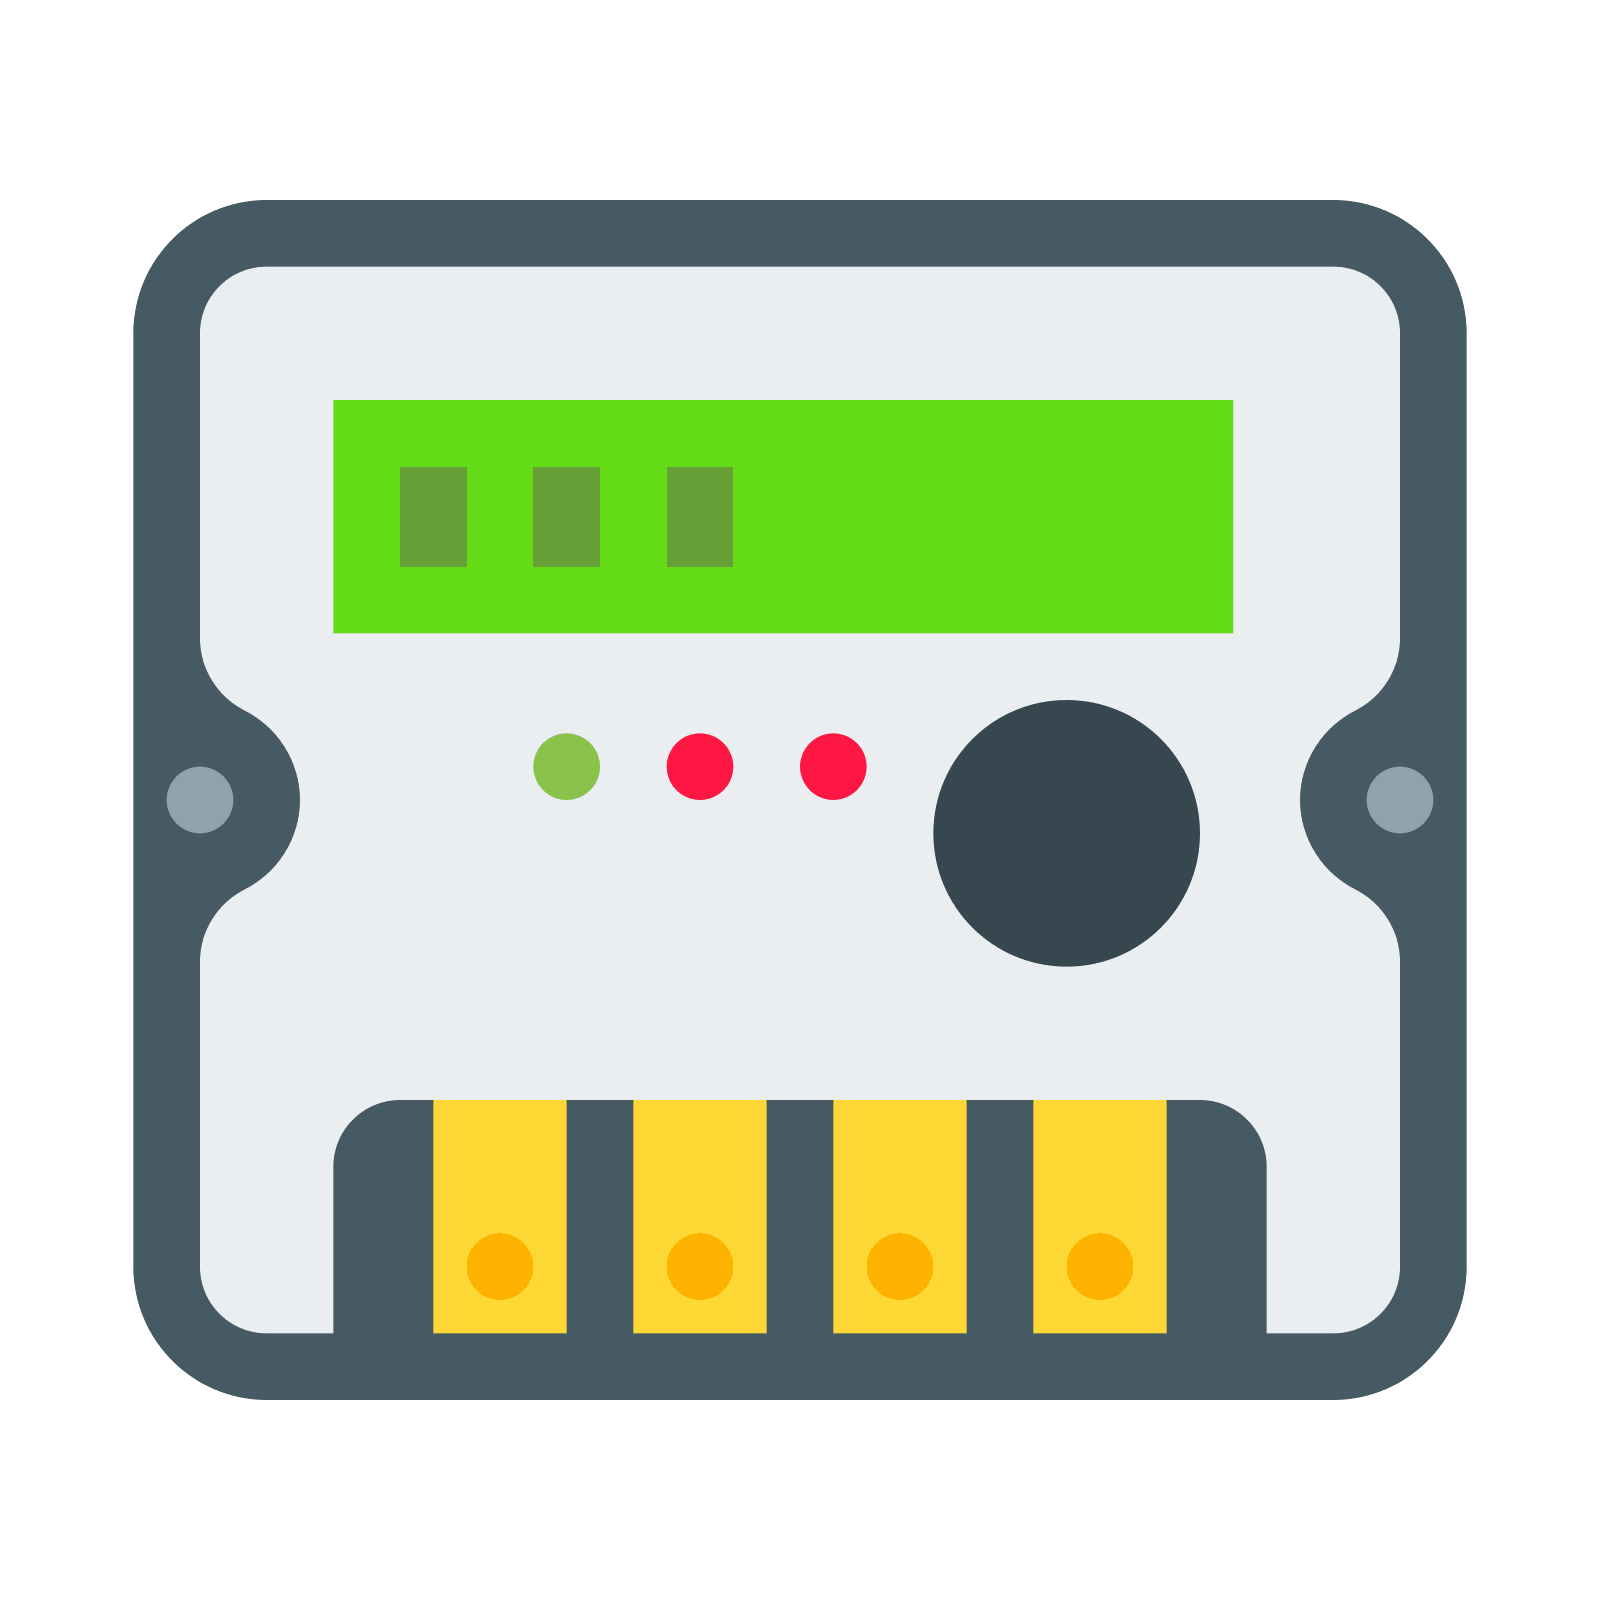 Electronics clipart voltmeter. Energy meter icon free